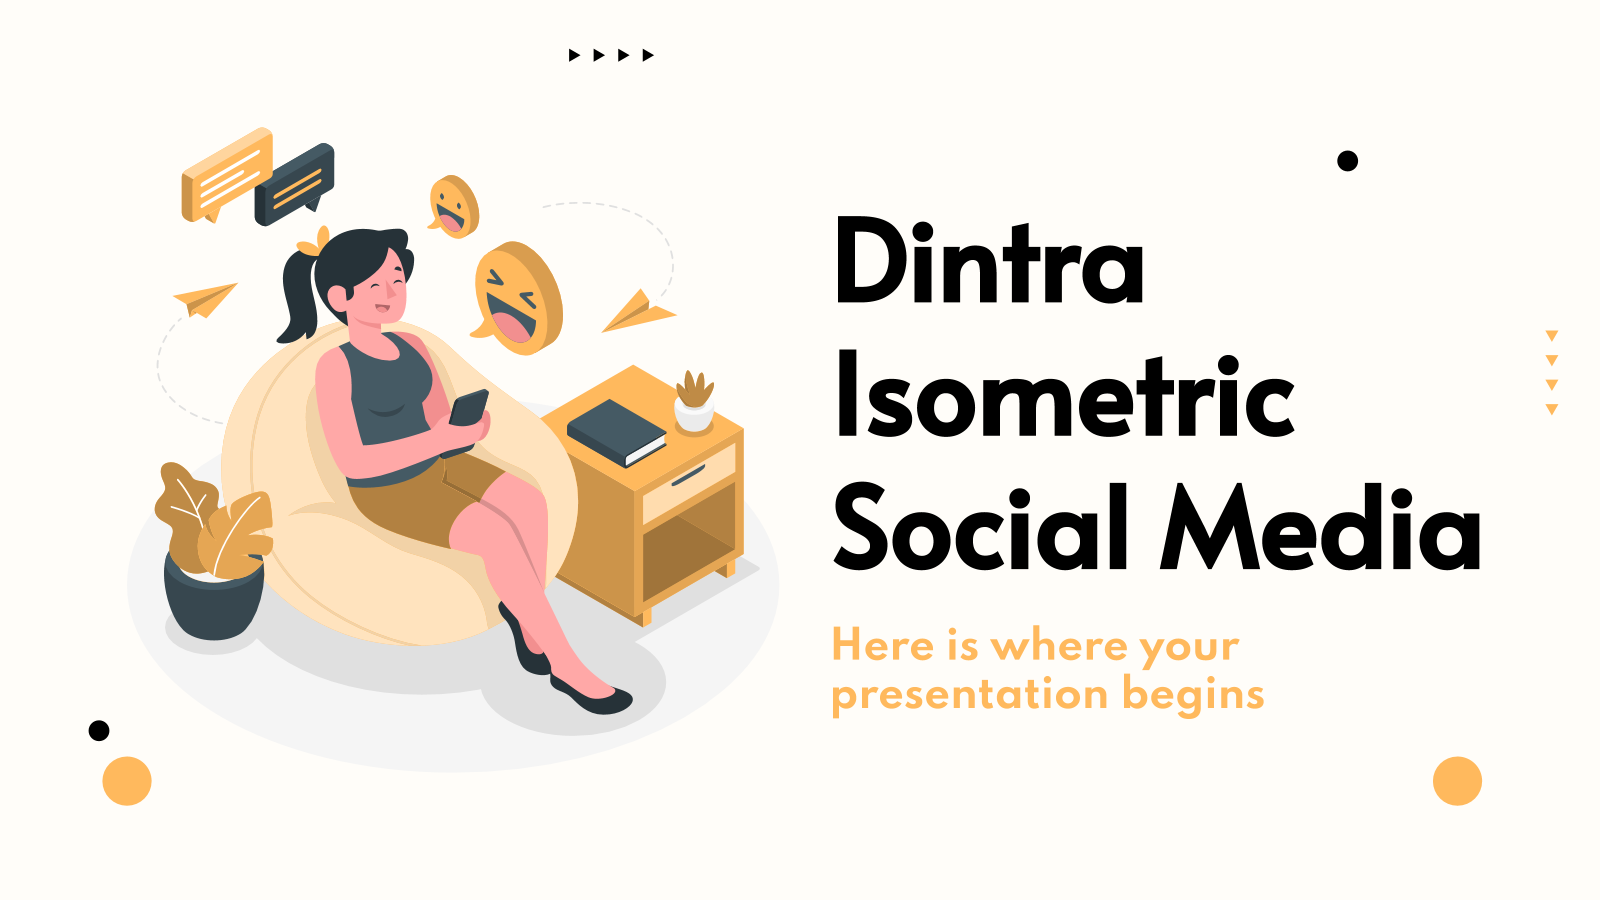 Dintra Isometric Social Media presentation template